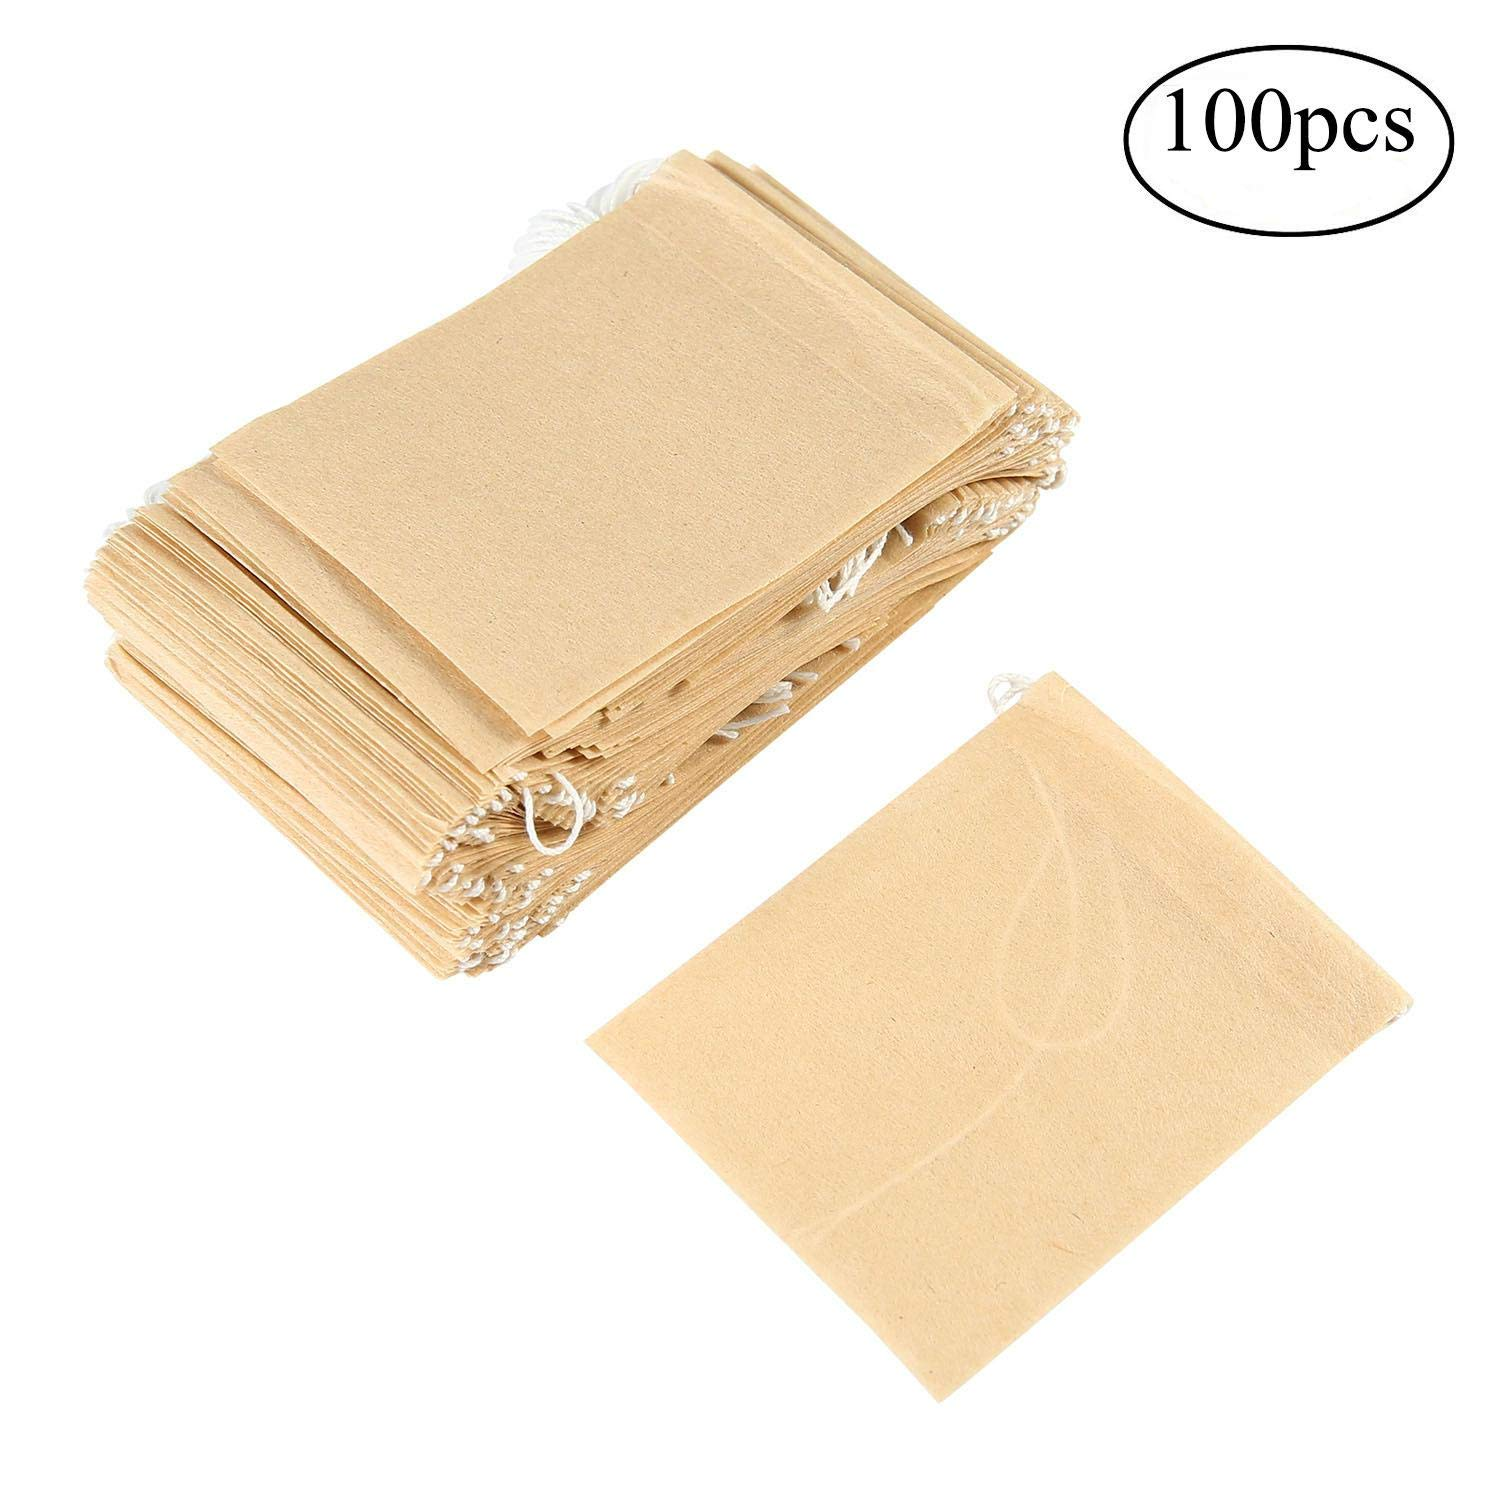 AOLVO Disposable Drawstring Empty Paper Tea Filter Bags for Herb and Tea Looses Leaf Pack of 100